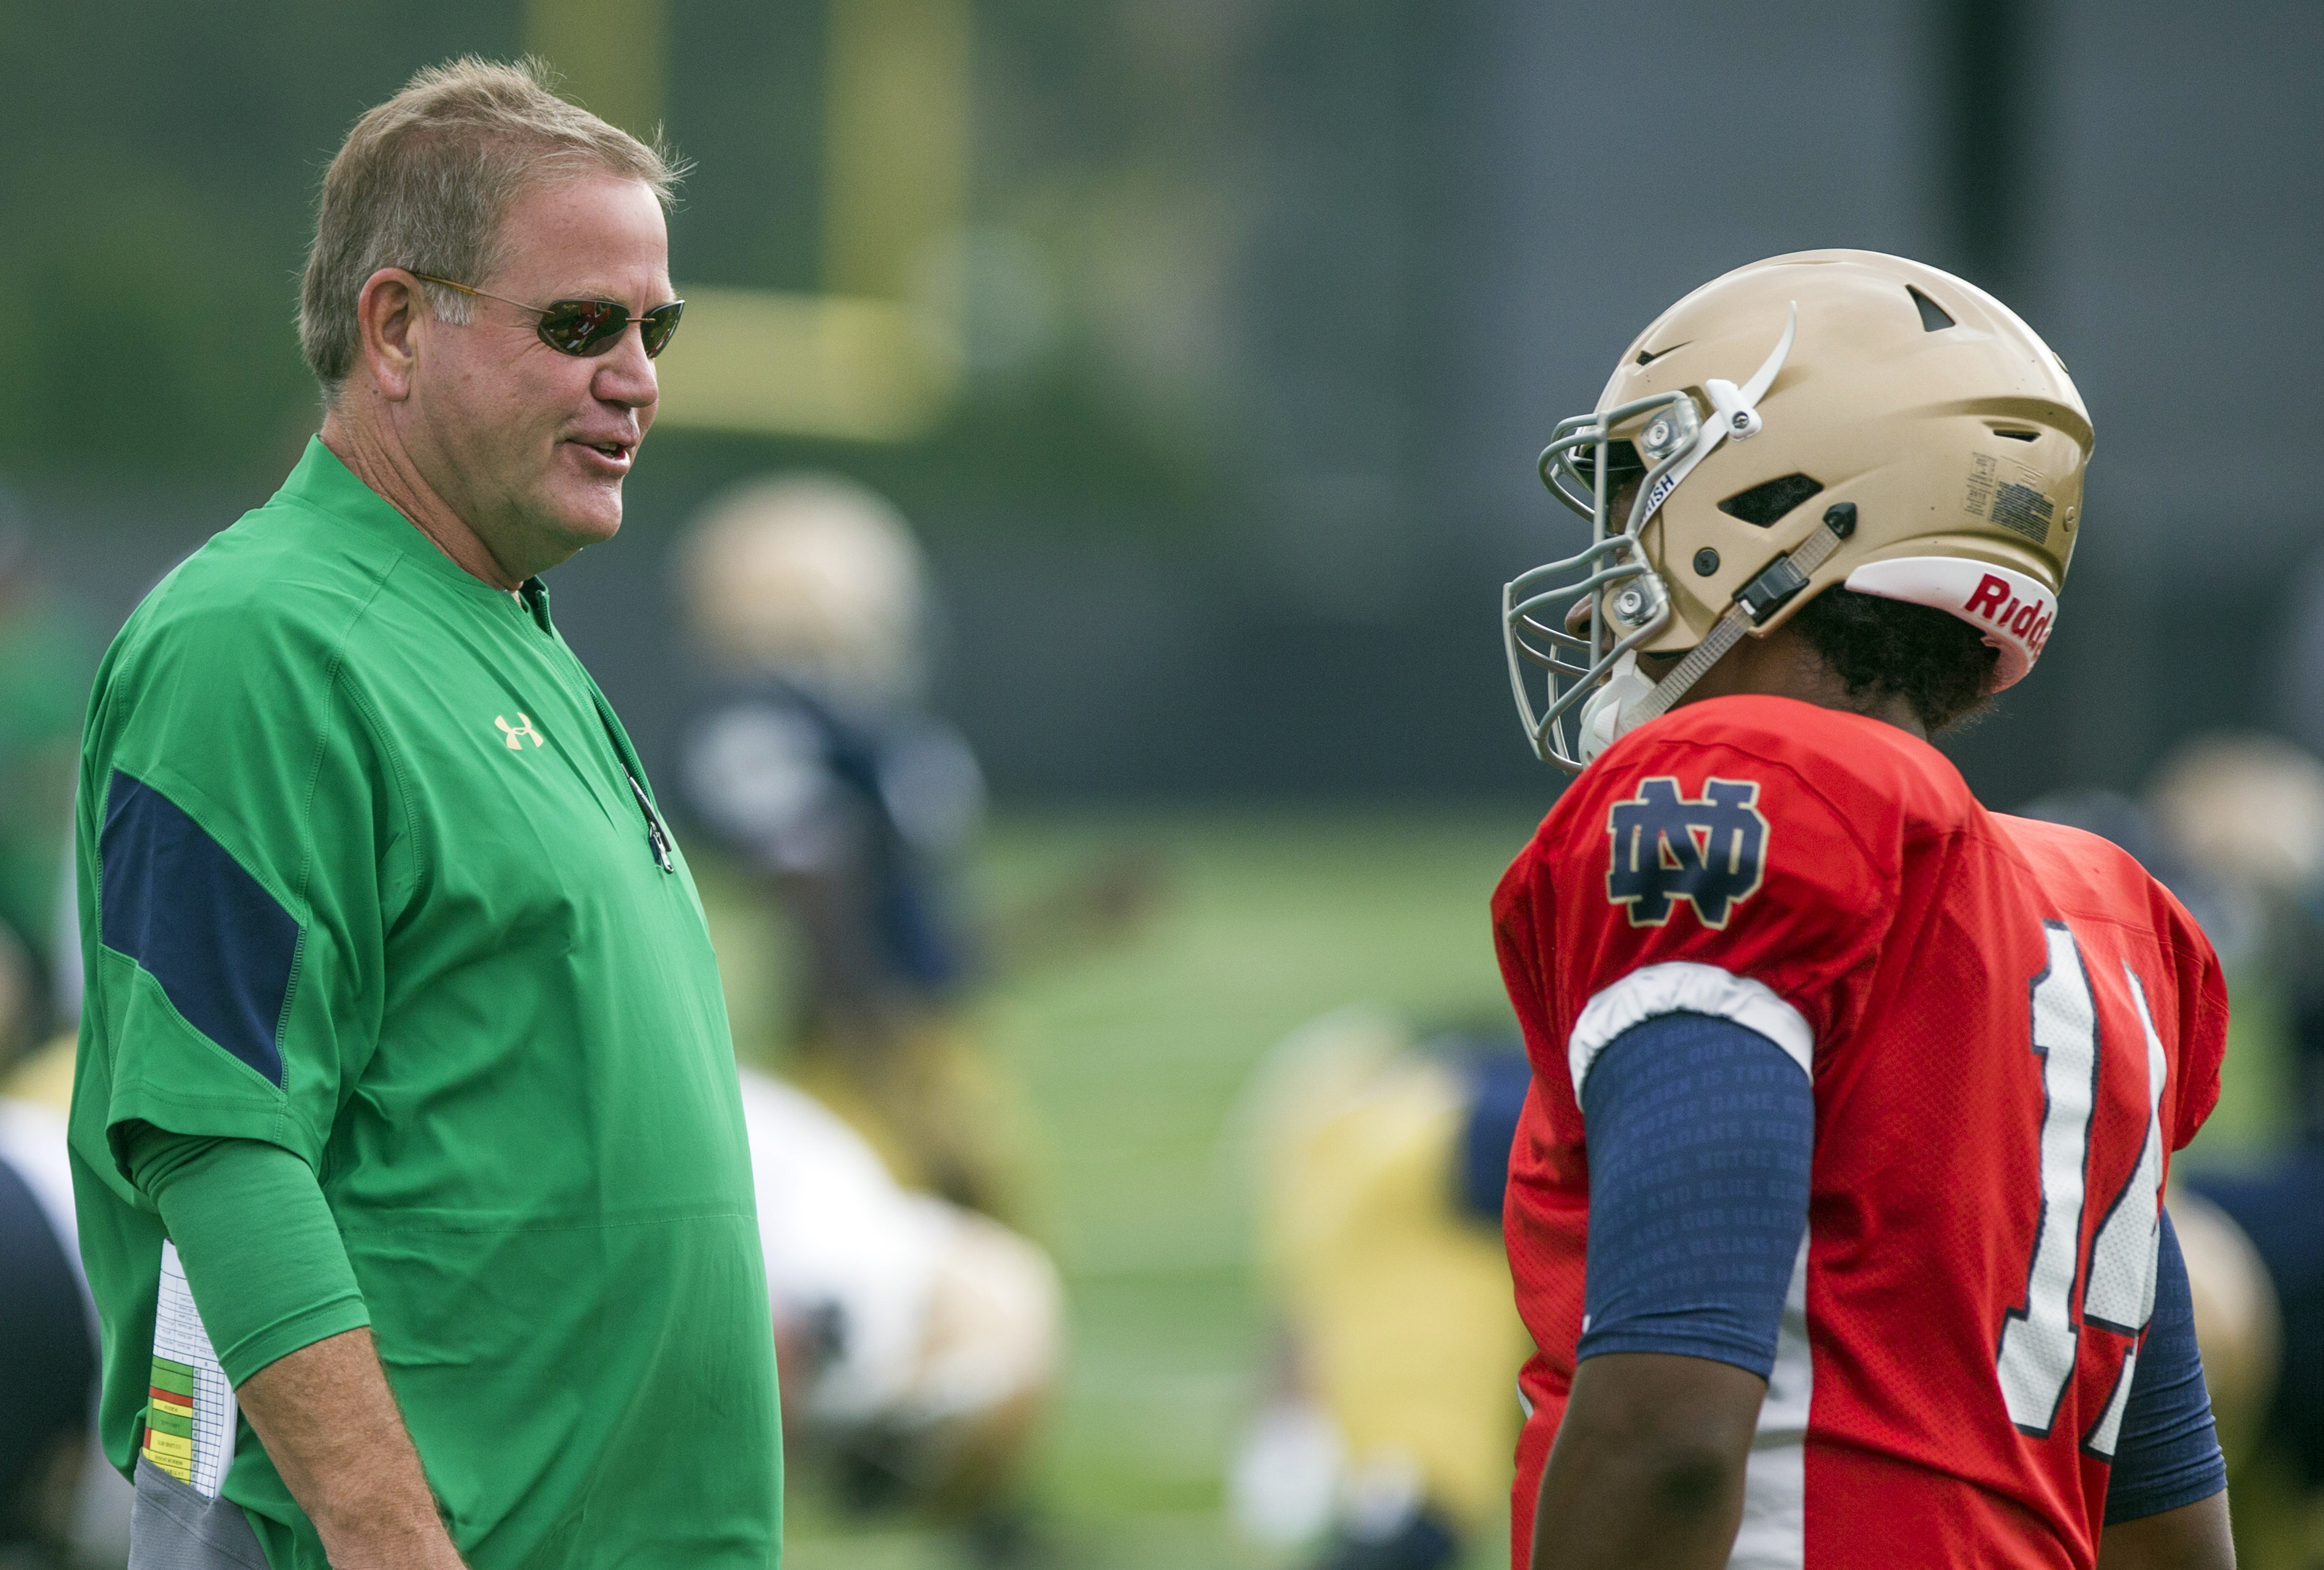 Notre Dame head coach Brian Kelly, left, and quarterback DeShone Kizer talk during NCAA college football practice Thursday, Aug. 11, 2016, in South Bend, Ind. (Robert Franklin/South Bend Tribune via AP)